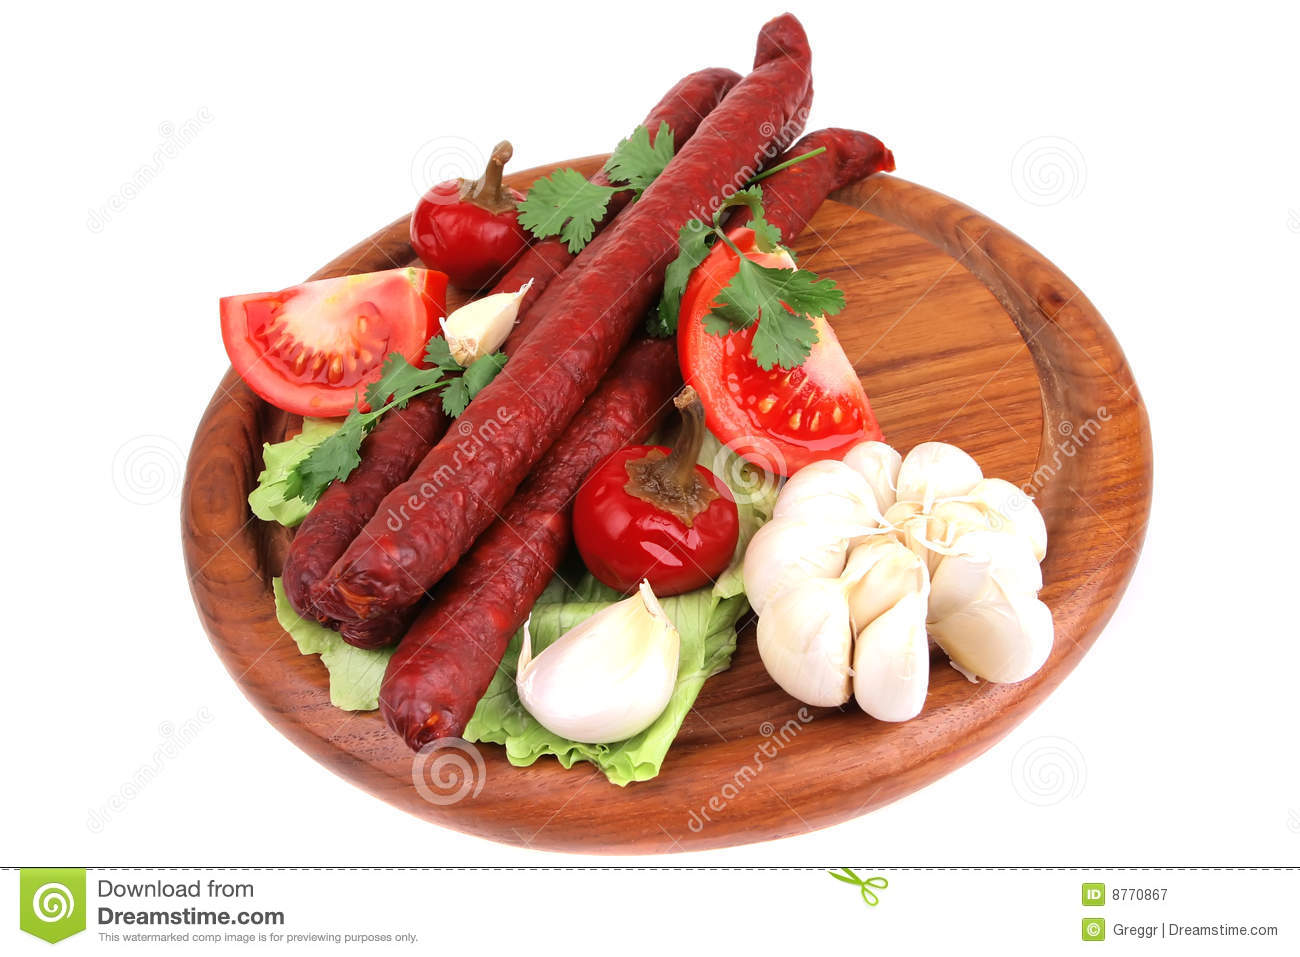 kabana sausage how to eat